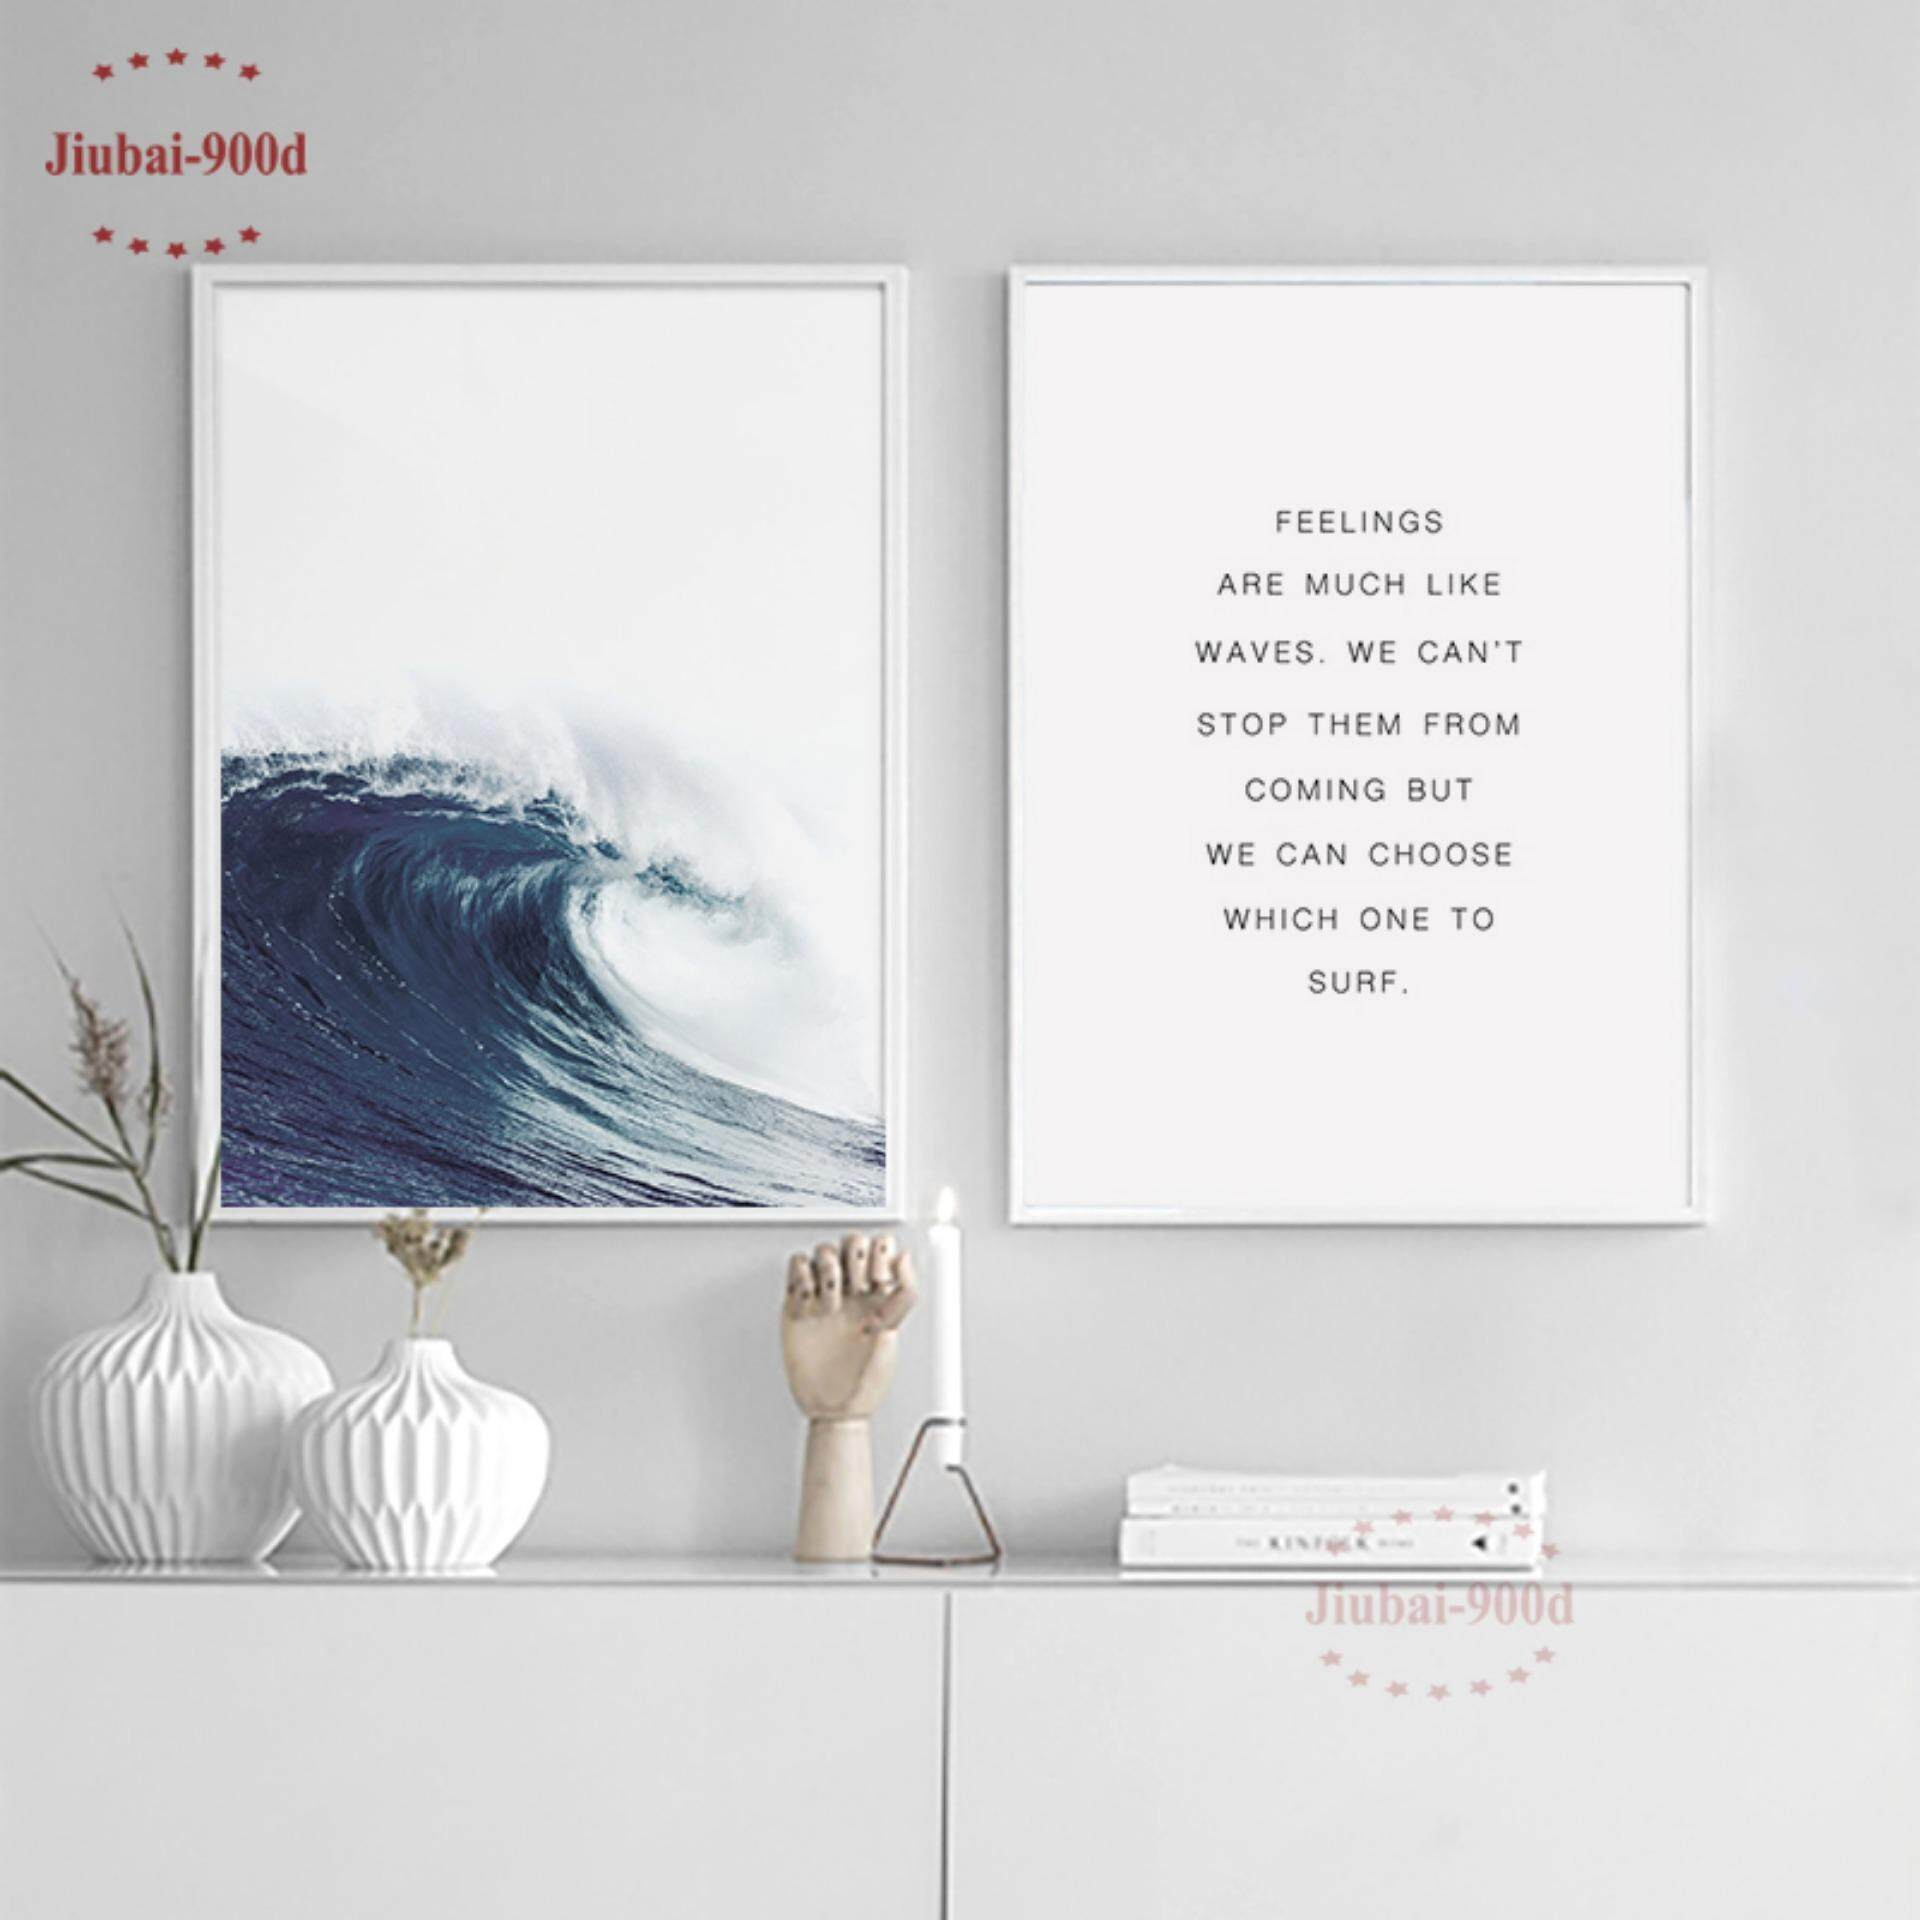 2 Pieces 30X42cm Unframed Sea Wave Art Print Painting Poster - intl